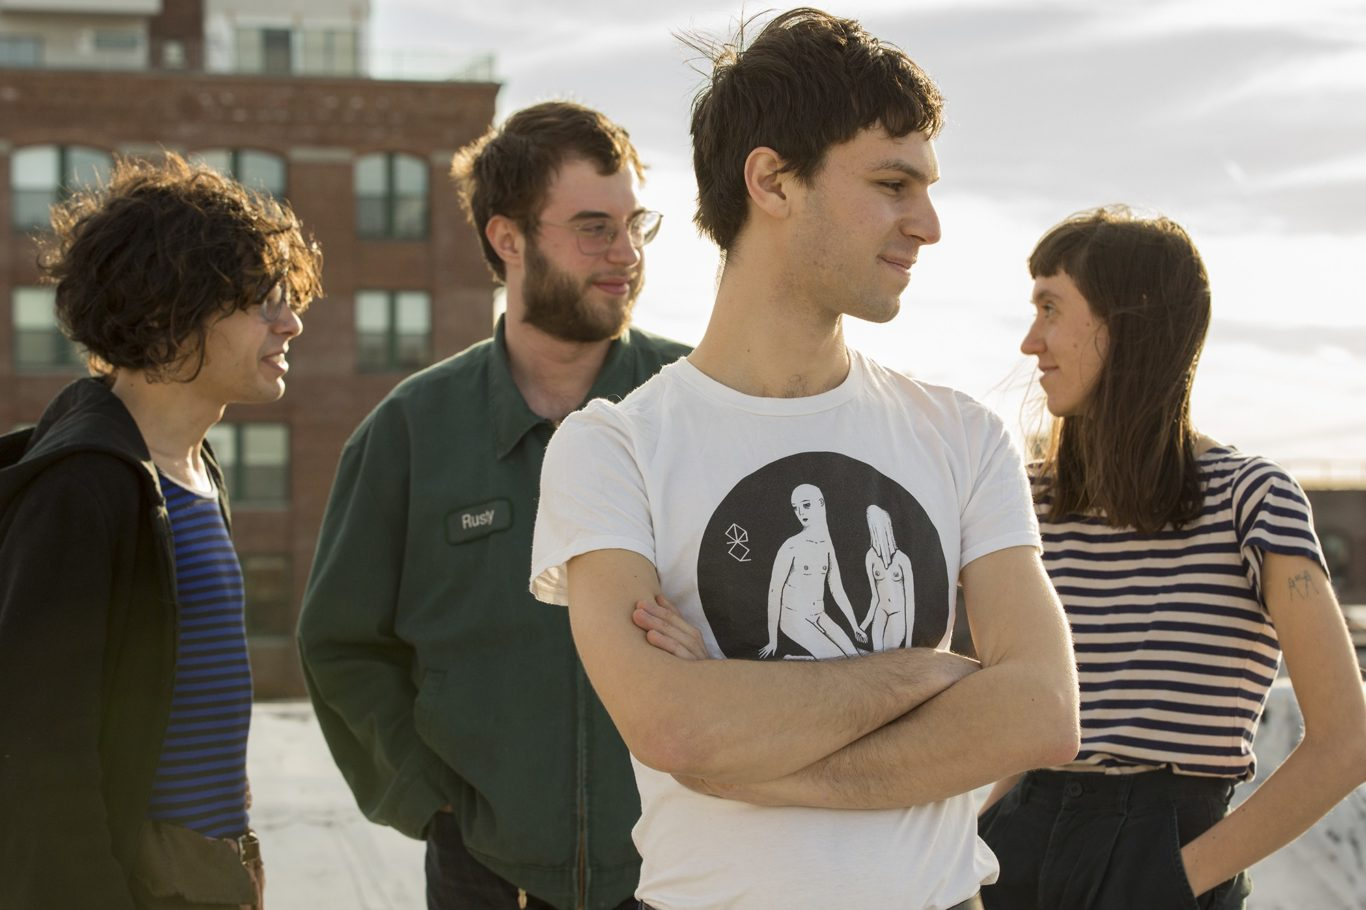 How Brooklyn's Bellows Turned a Friend Breakup Into a Beautiful New